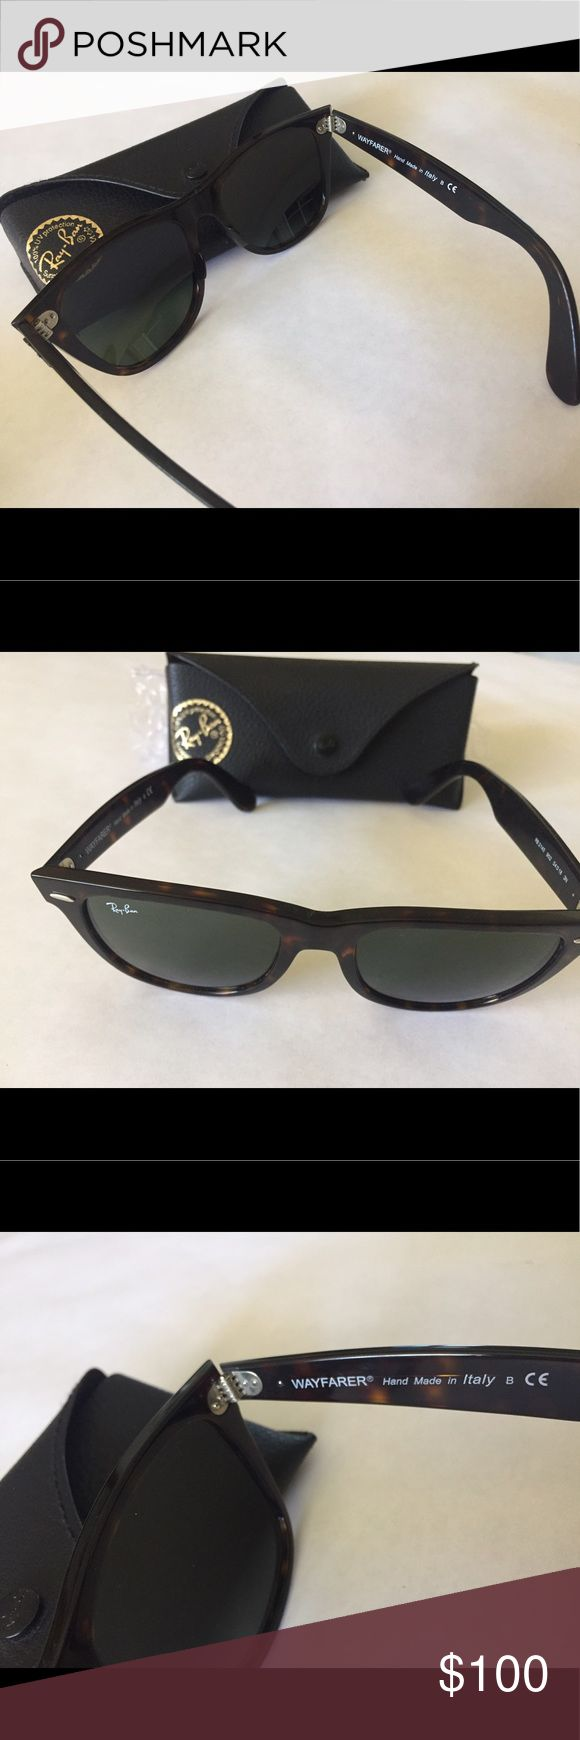 Ray-Ban Wayfarer Ray-Ban Wayfarer used couple times good condition. Case included ask if you have questions Ray-Ban Accessories Sunglasses